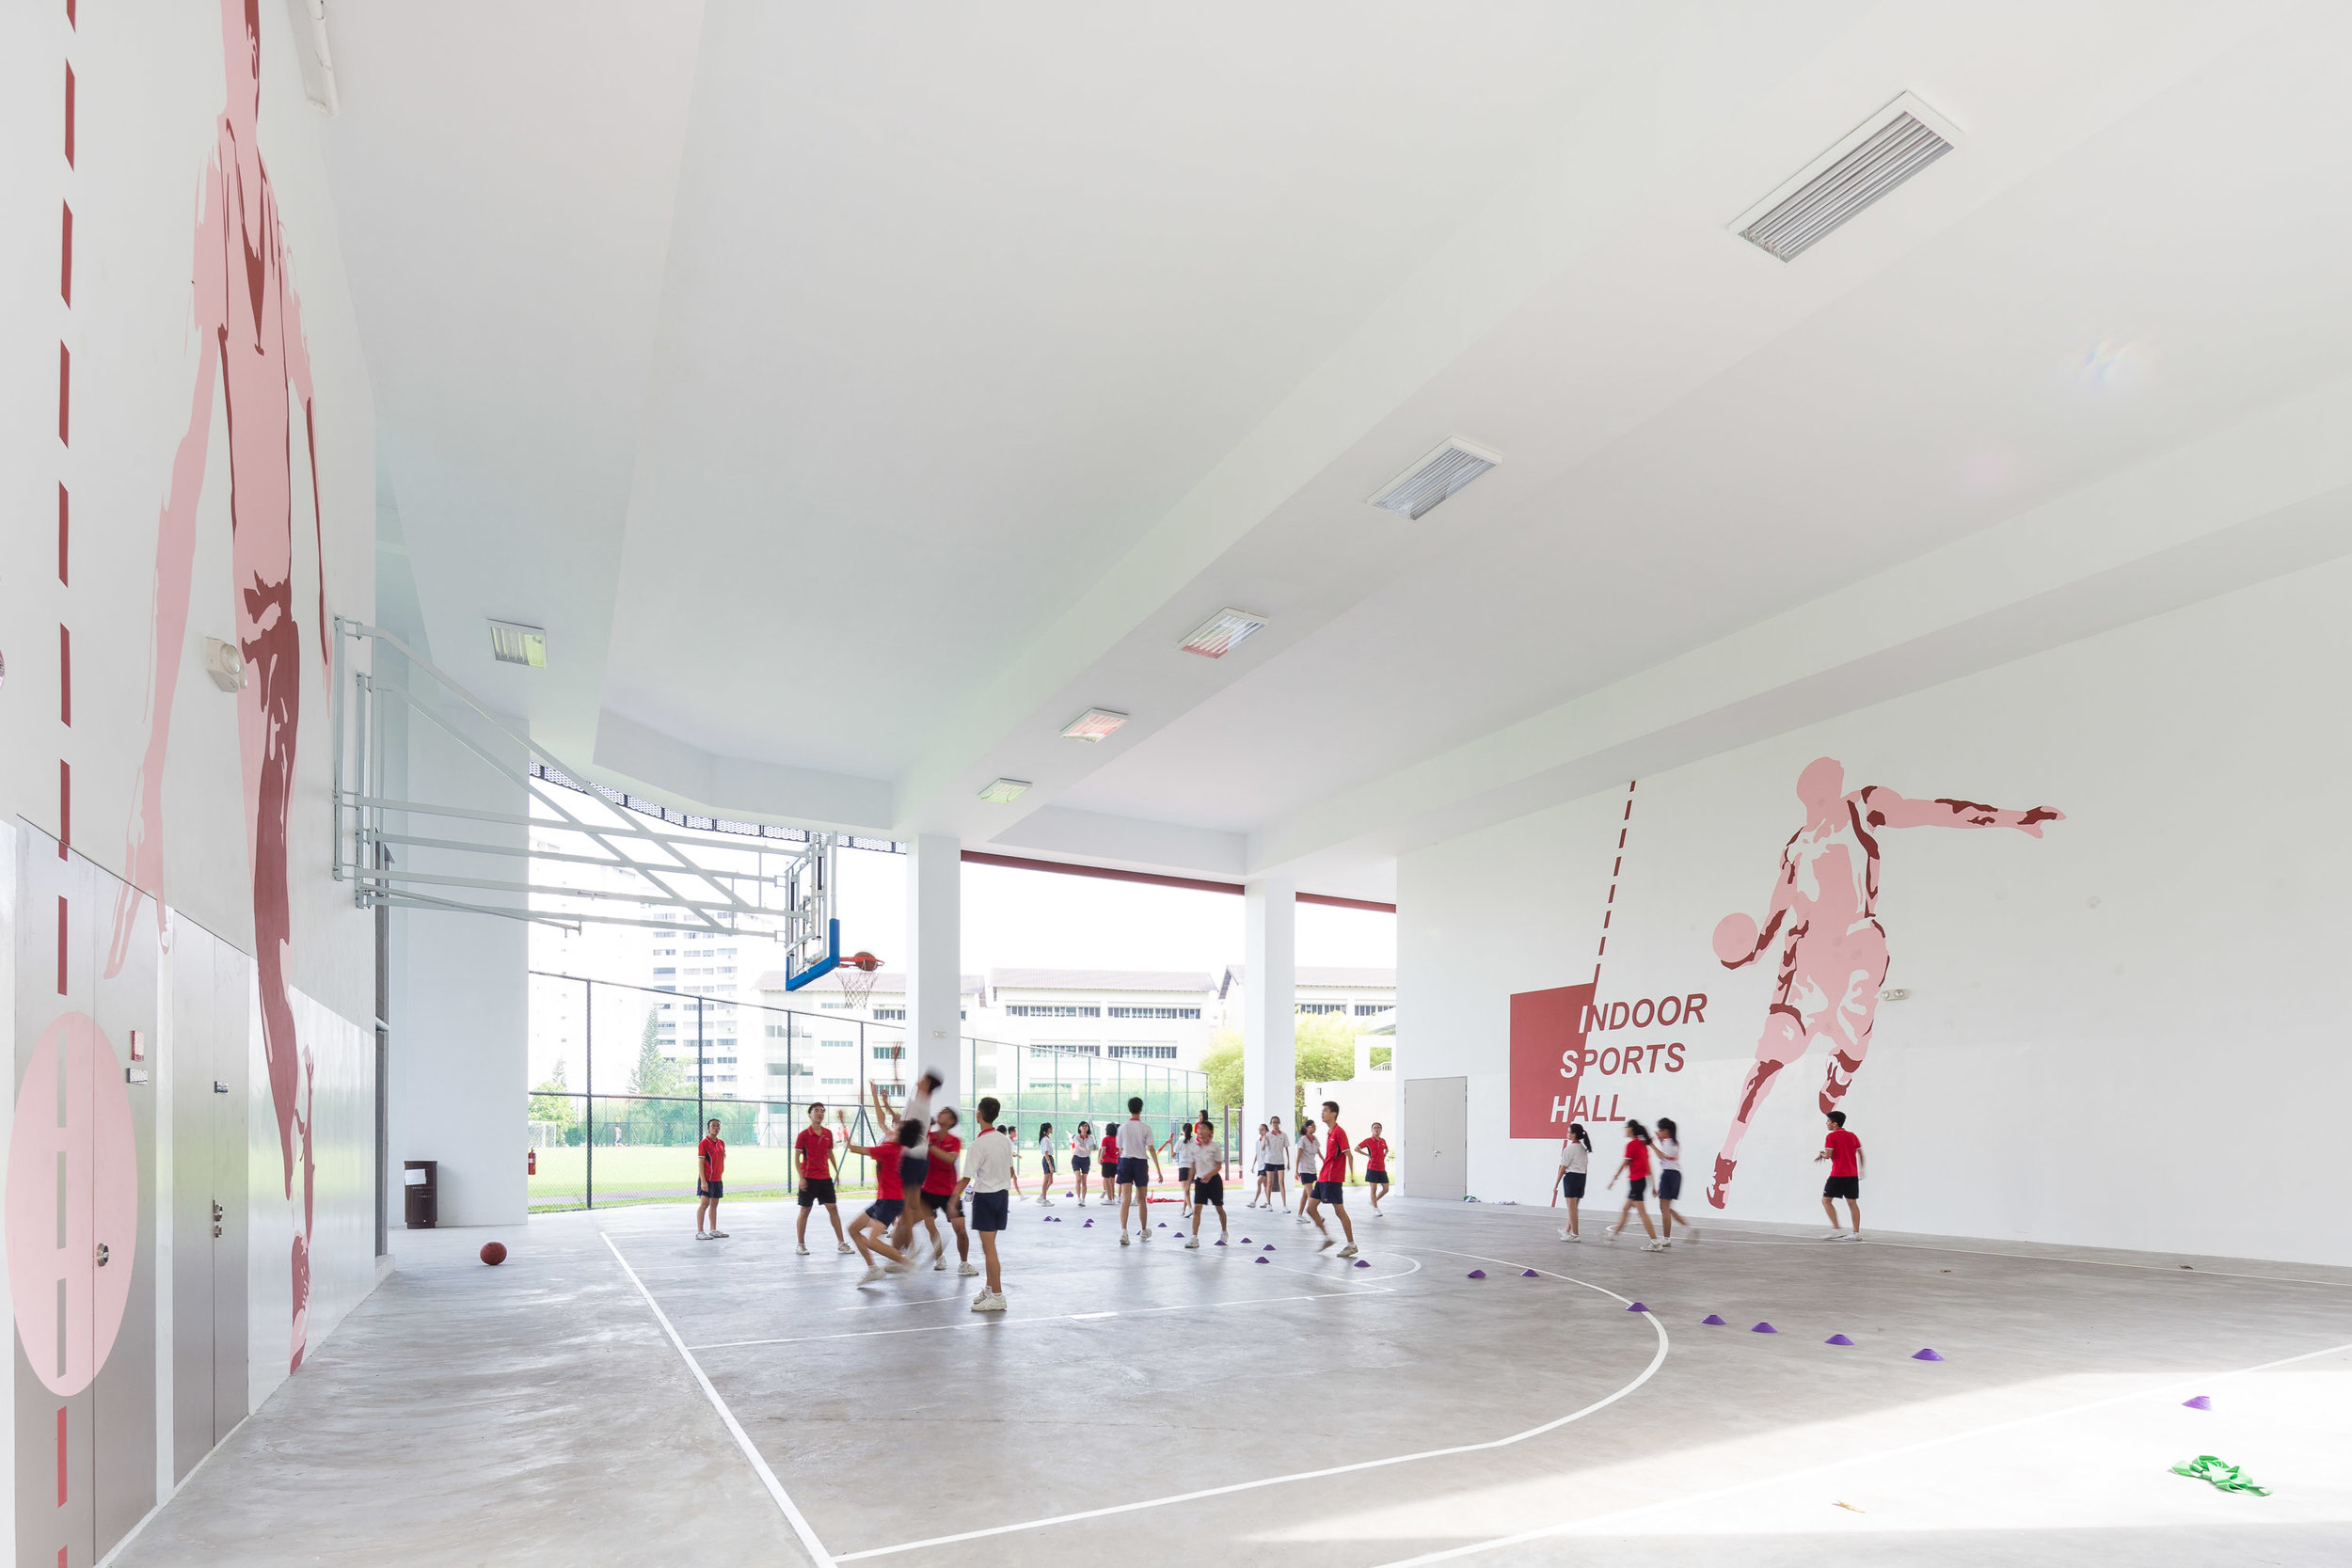 singapore-commercial-editorial-photographer-zainal-zainal-architecture-interior-sports-hall-moe-08.jpg